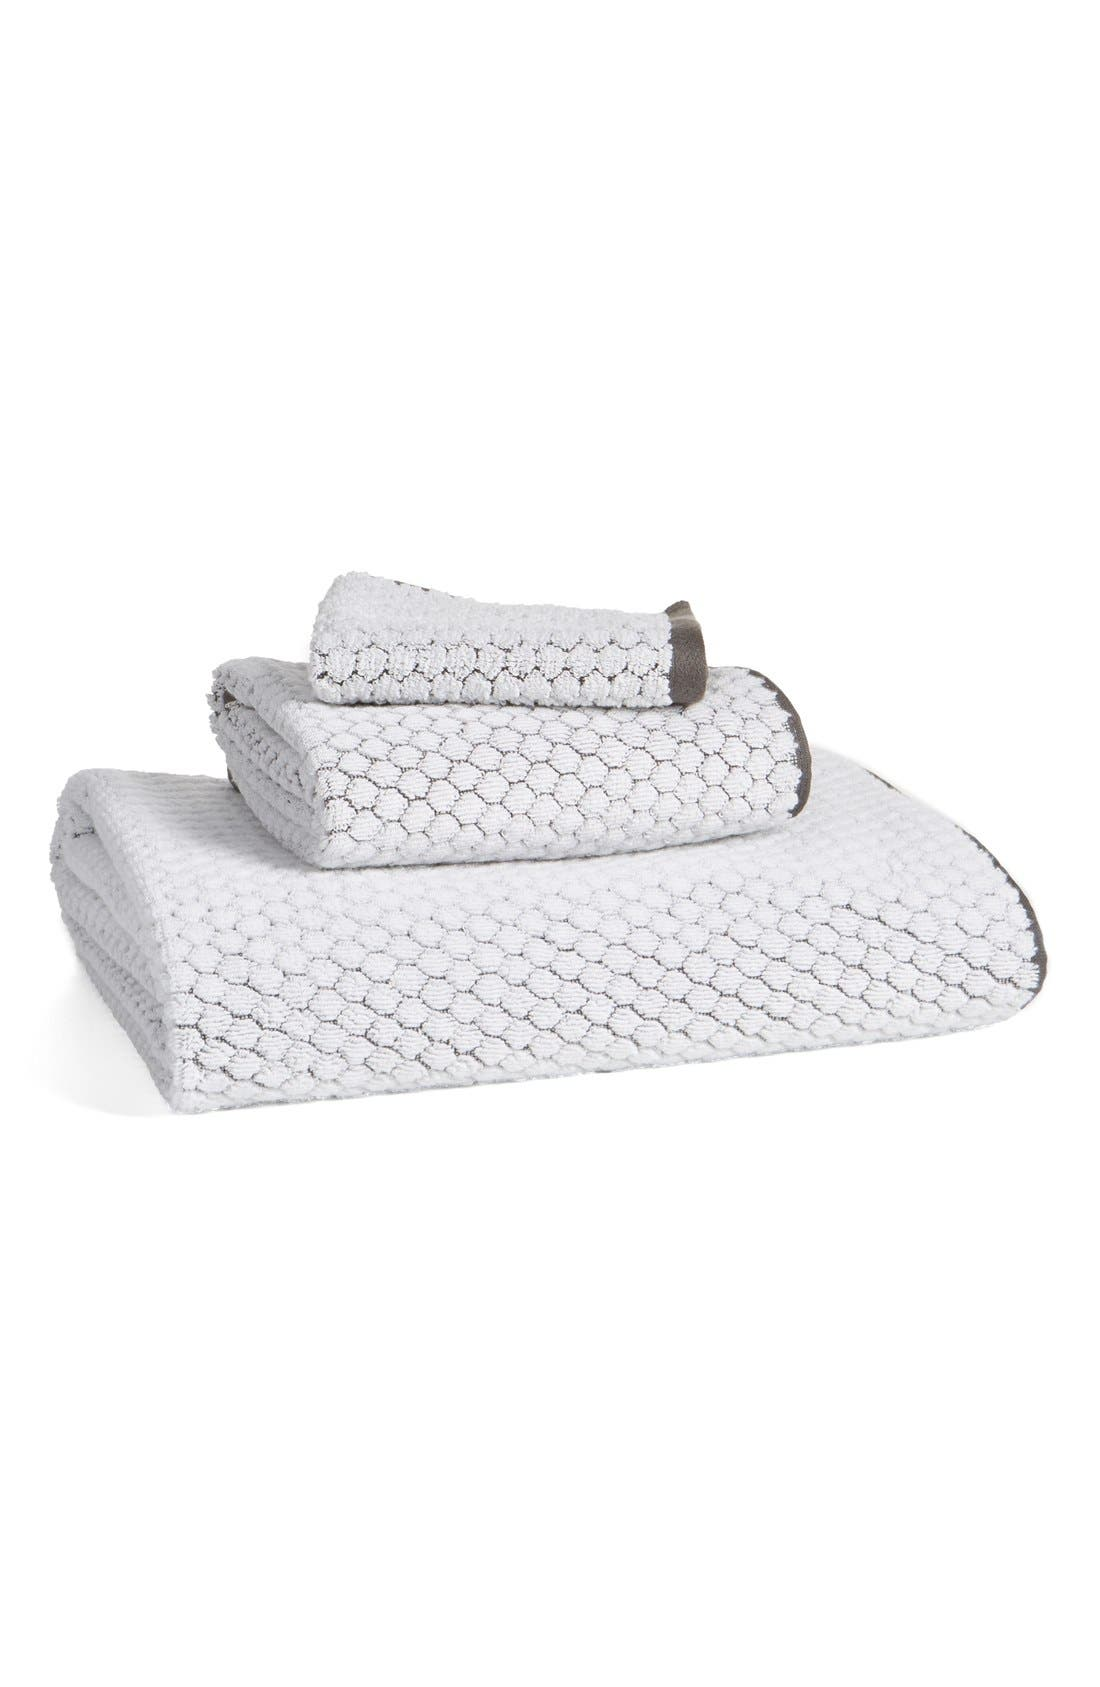 Nordstrom at Home 'Cobble' Towel Collection